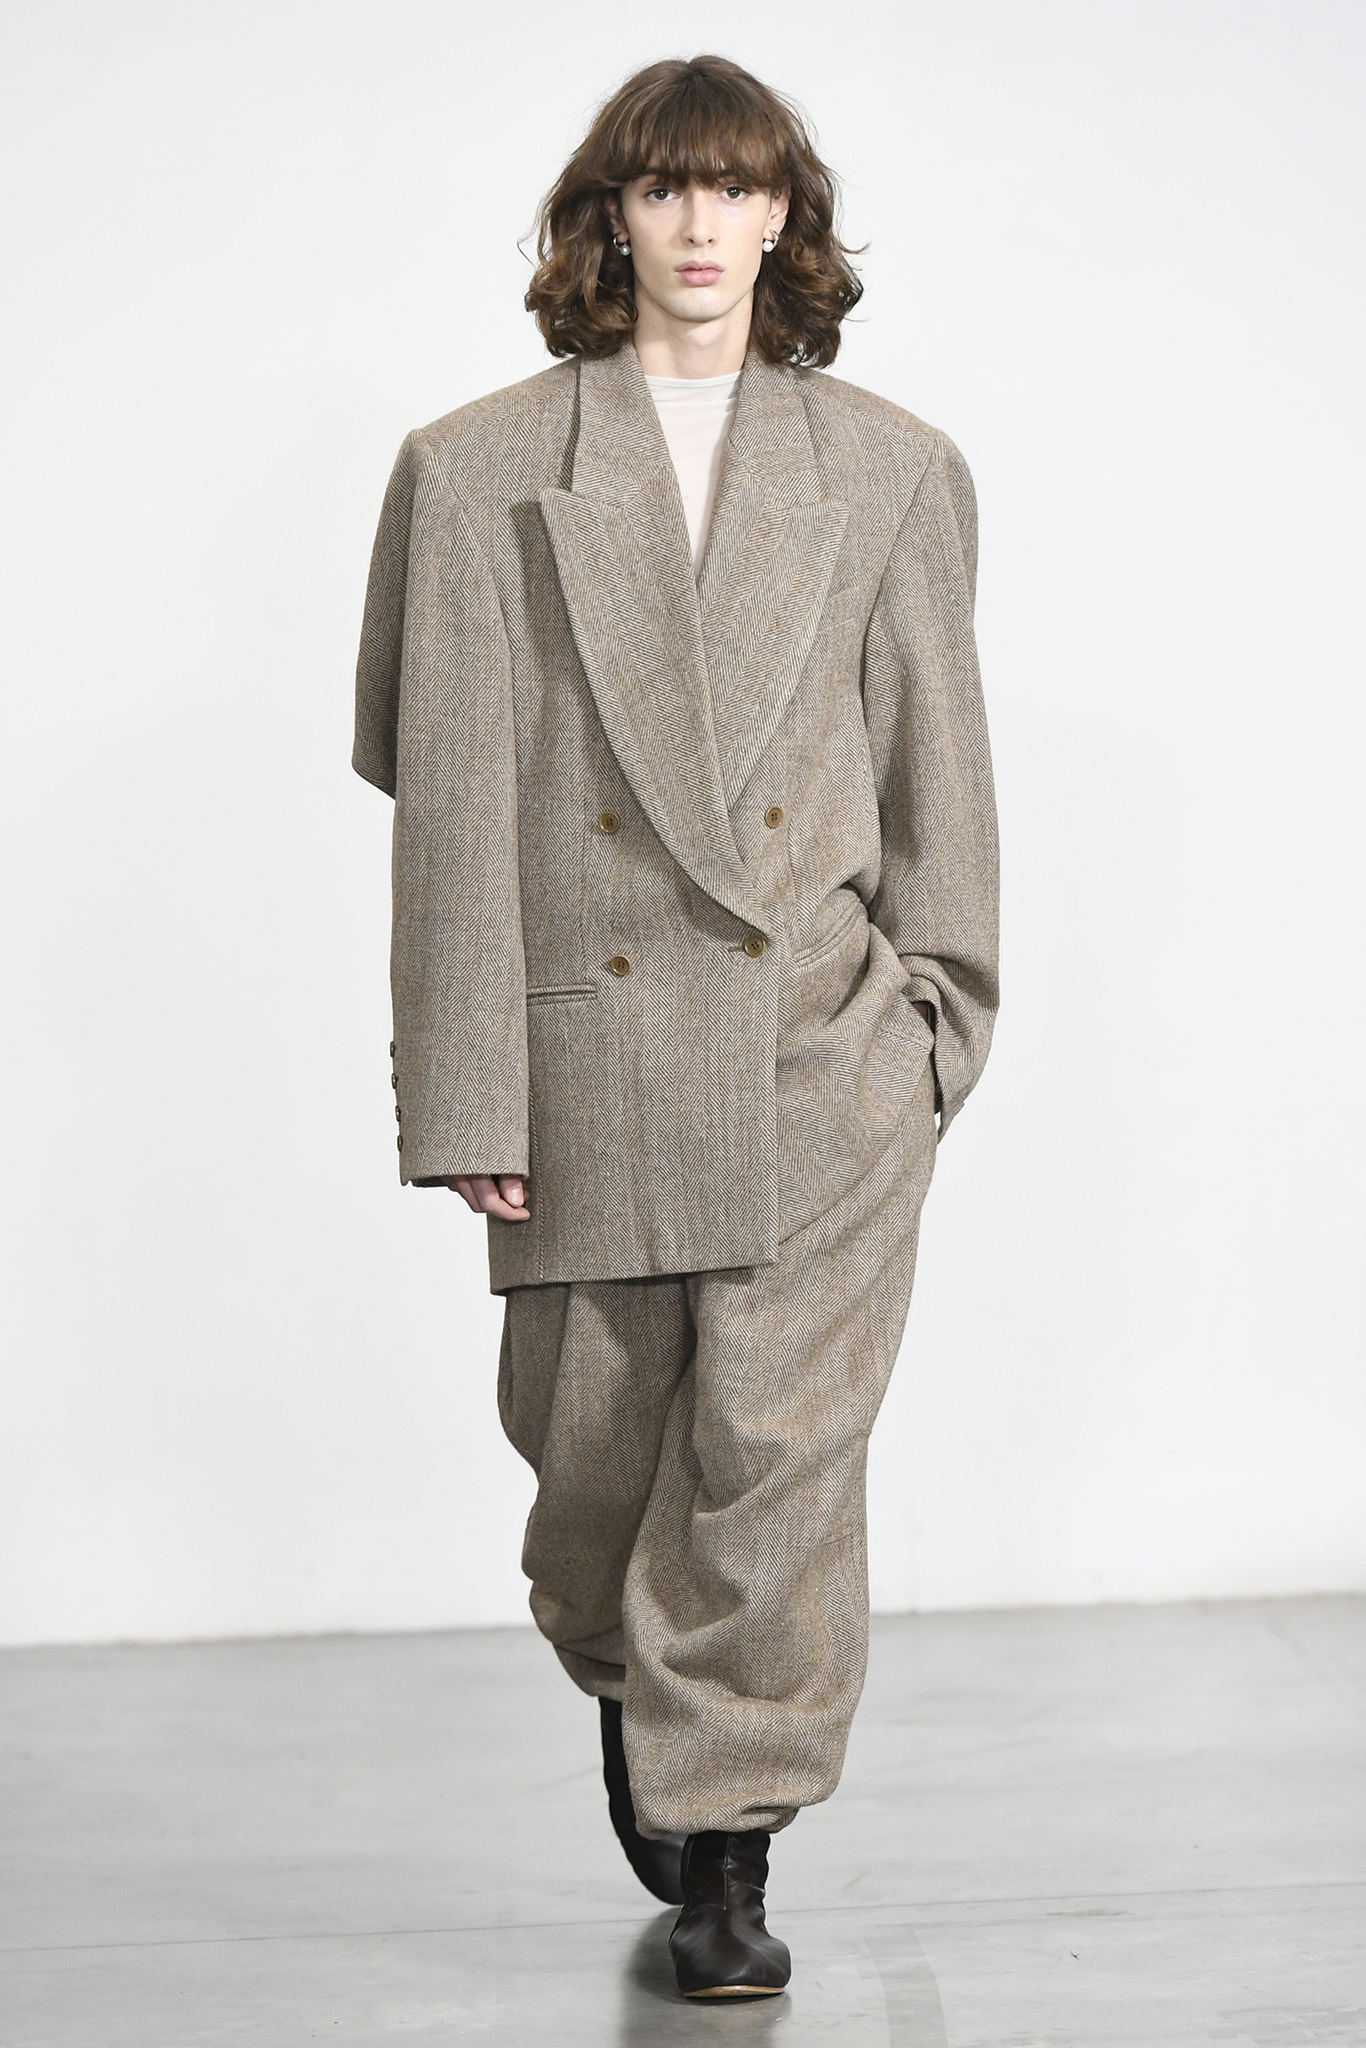 Hed Mayner Men's Fall 2020